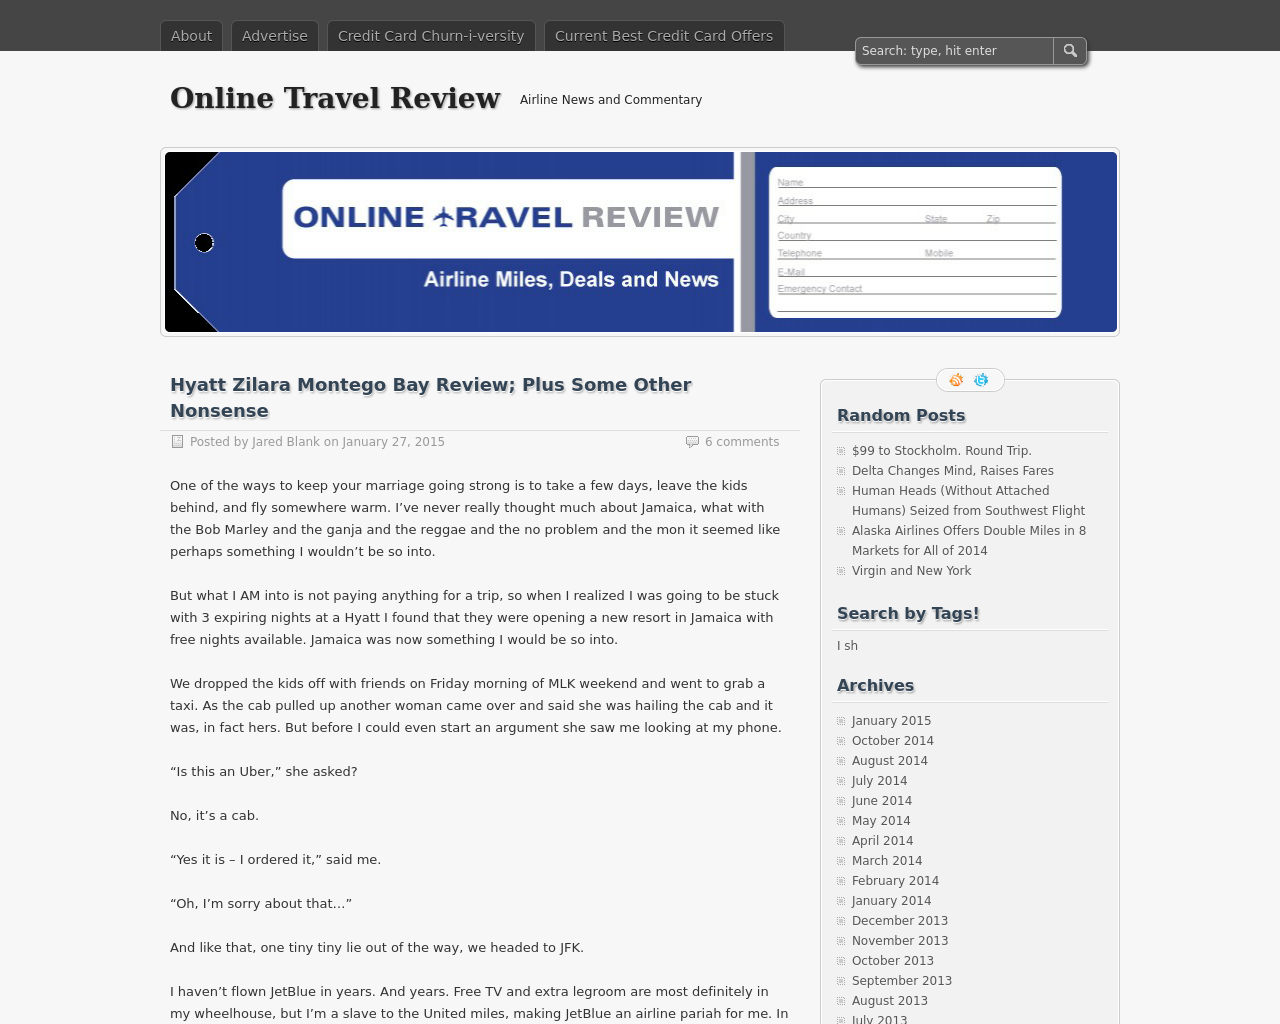 ONLINE-TRAVEL-REVIEW-Advertising-Reviews-Pricing